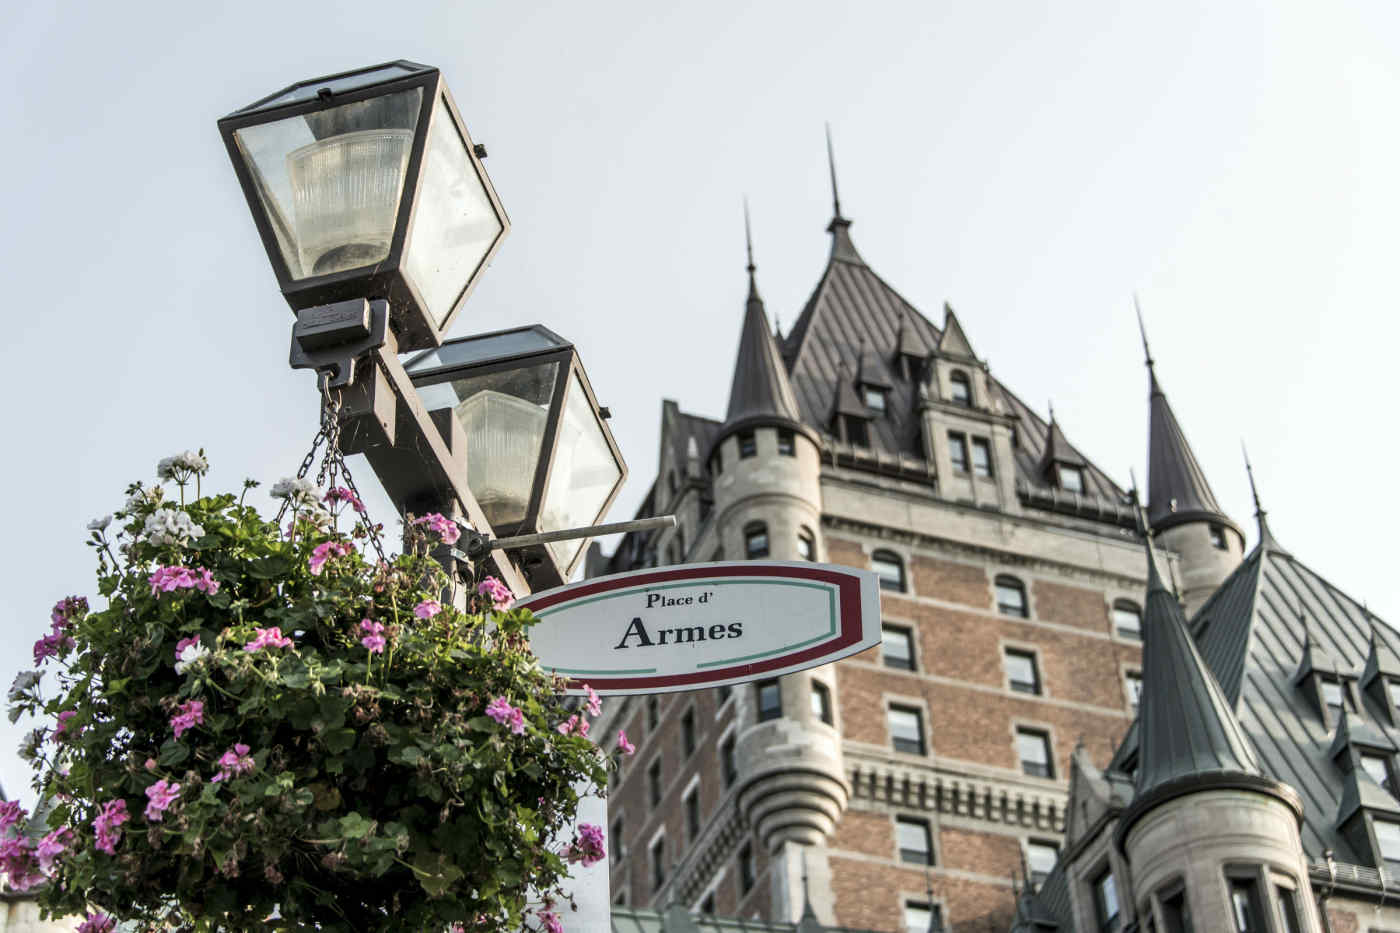 Place d'Armes sign in front of Chateau Frontenac